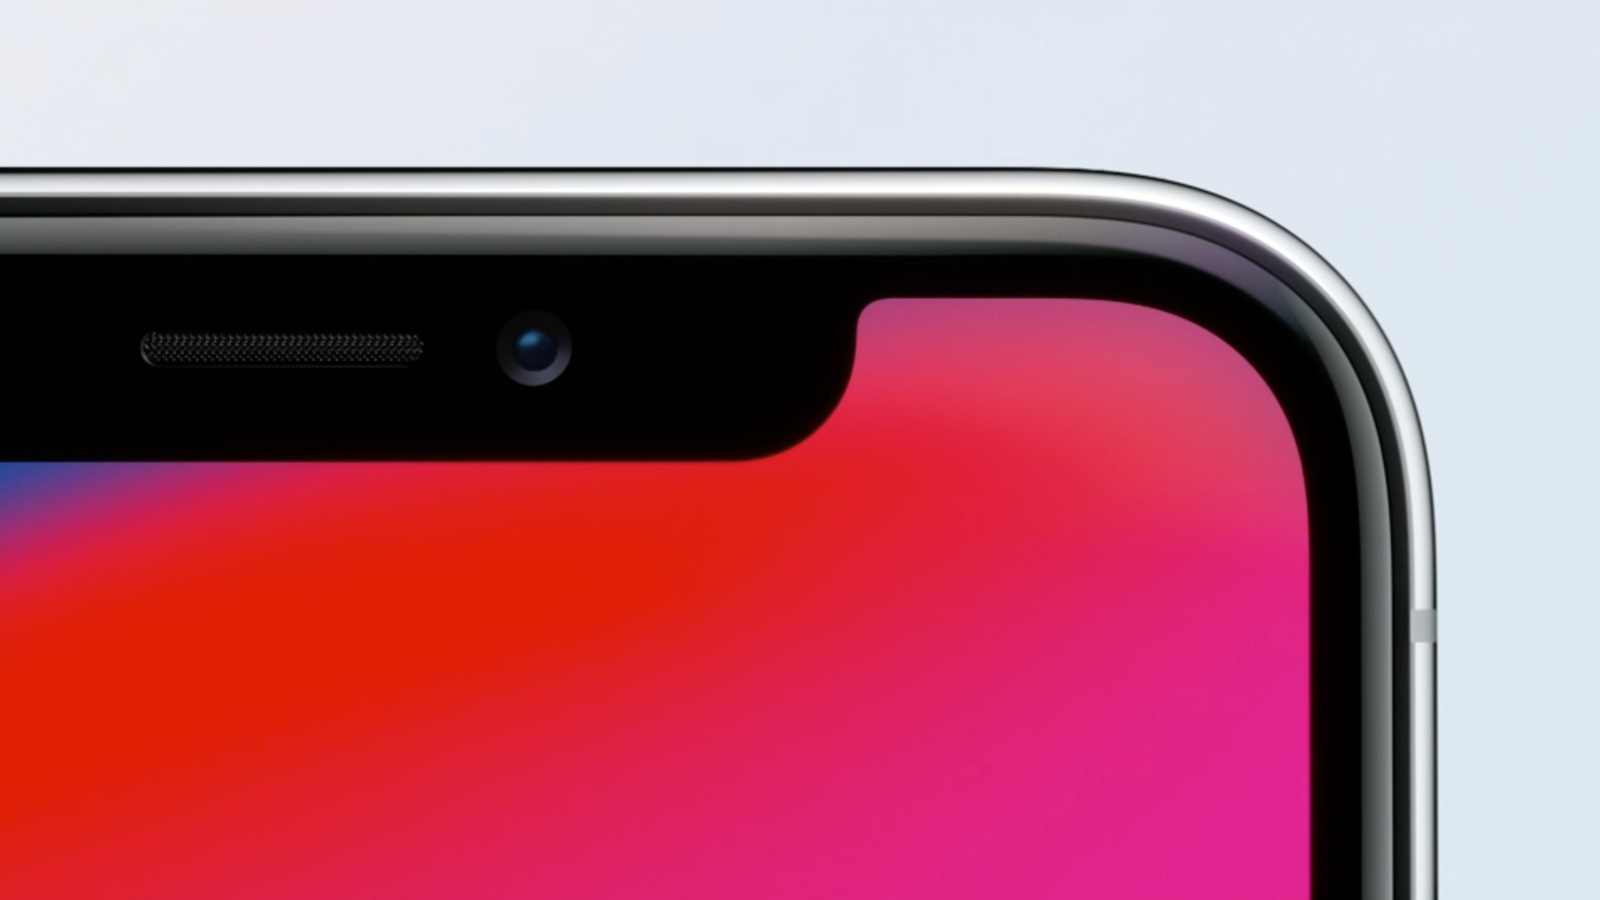 I'm Going to Buy the iPhone X, and I Hate Myself for It